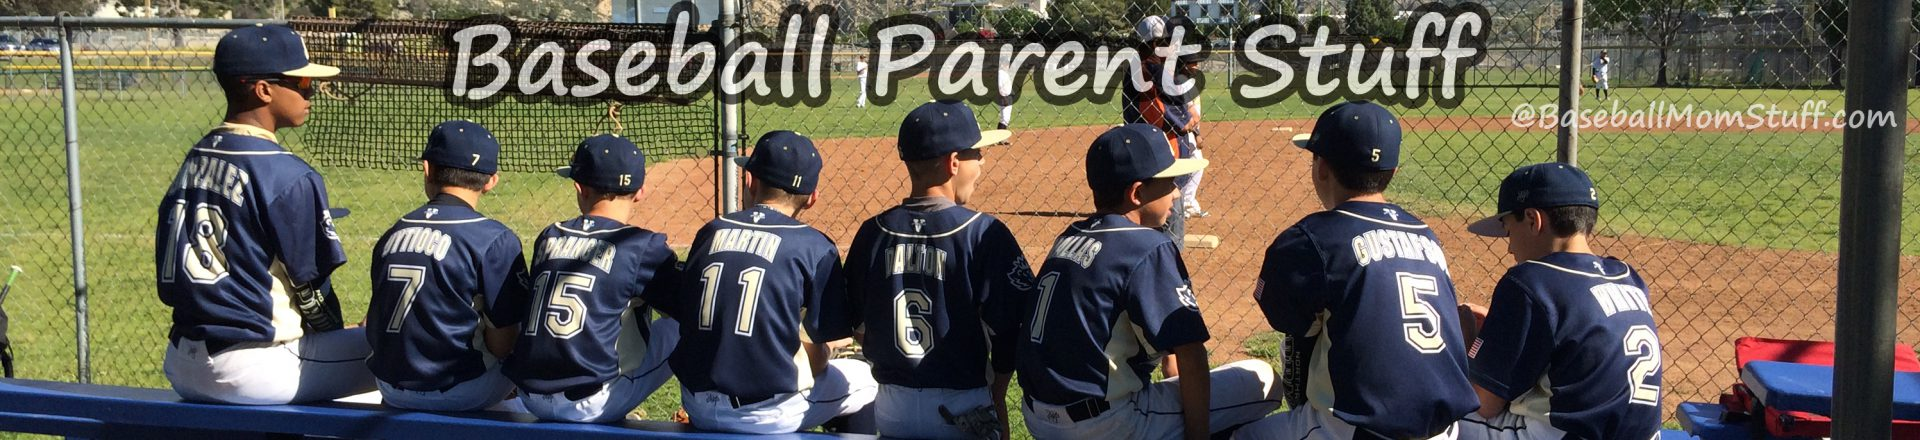 10 Types of Sports Dads You Don't Want to Be